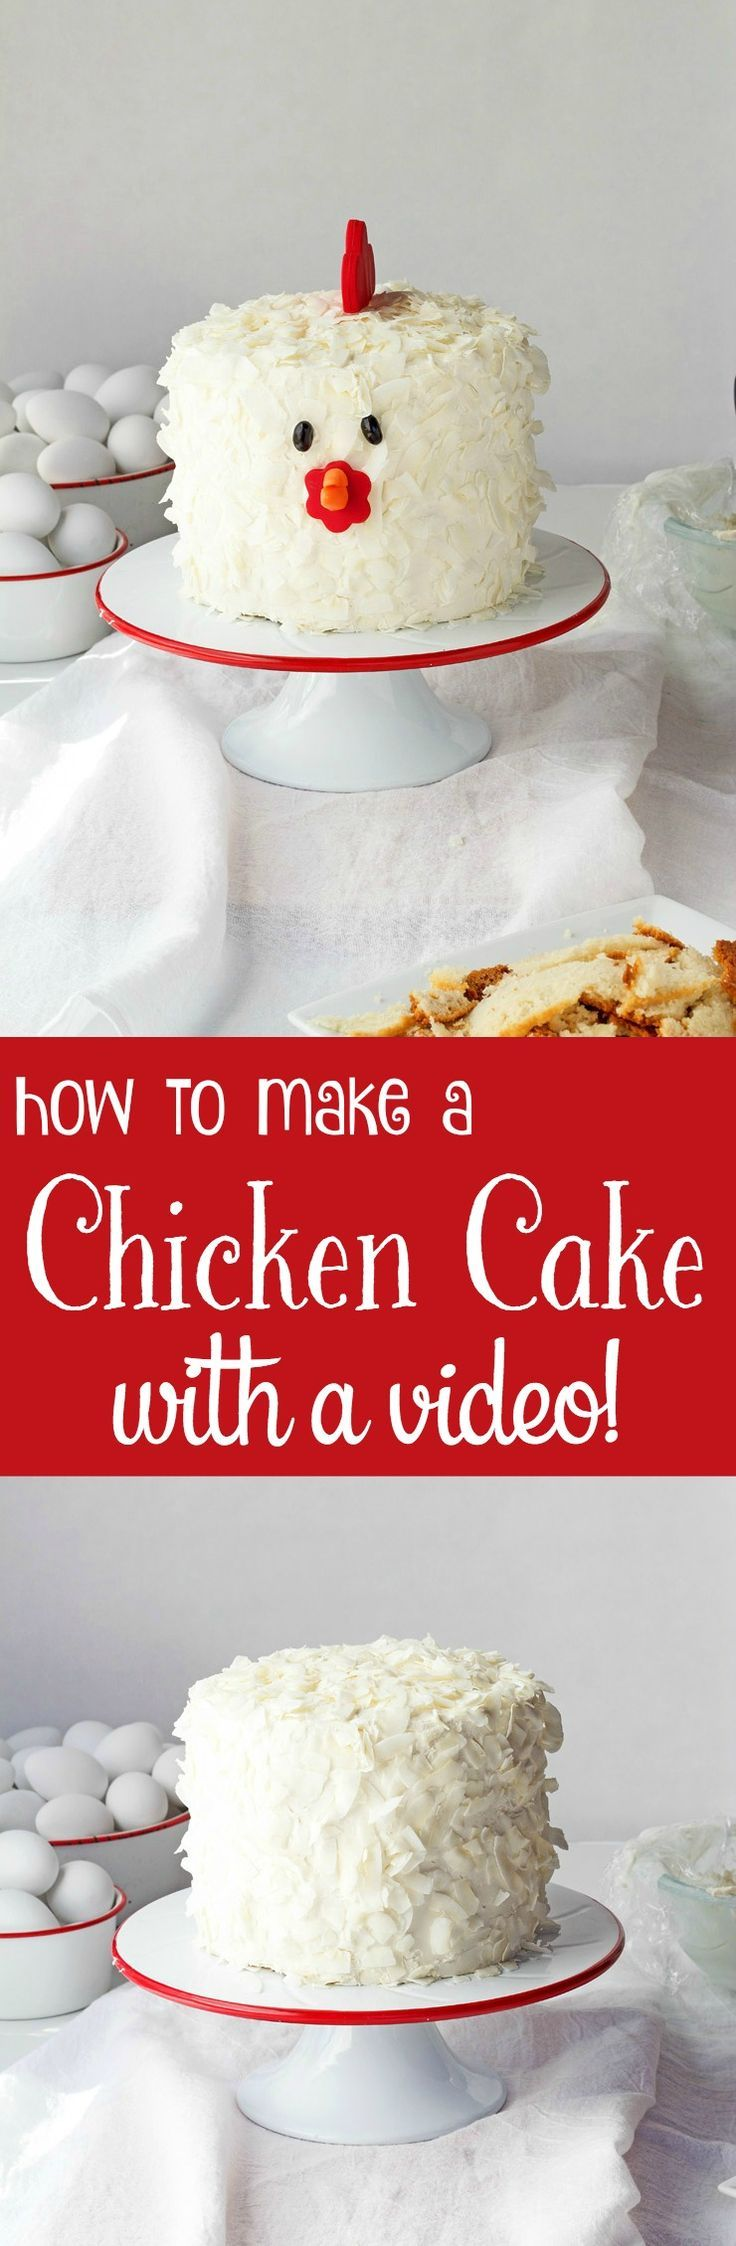 How to Make a Simple Cute Chicken Cake with a How to Video | The Bearfoot Baker